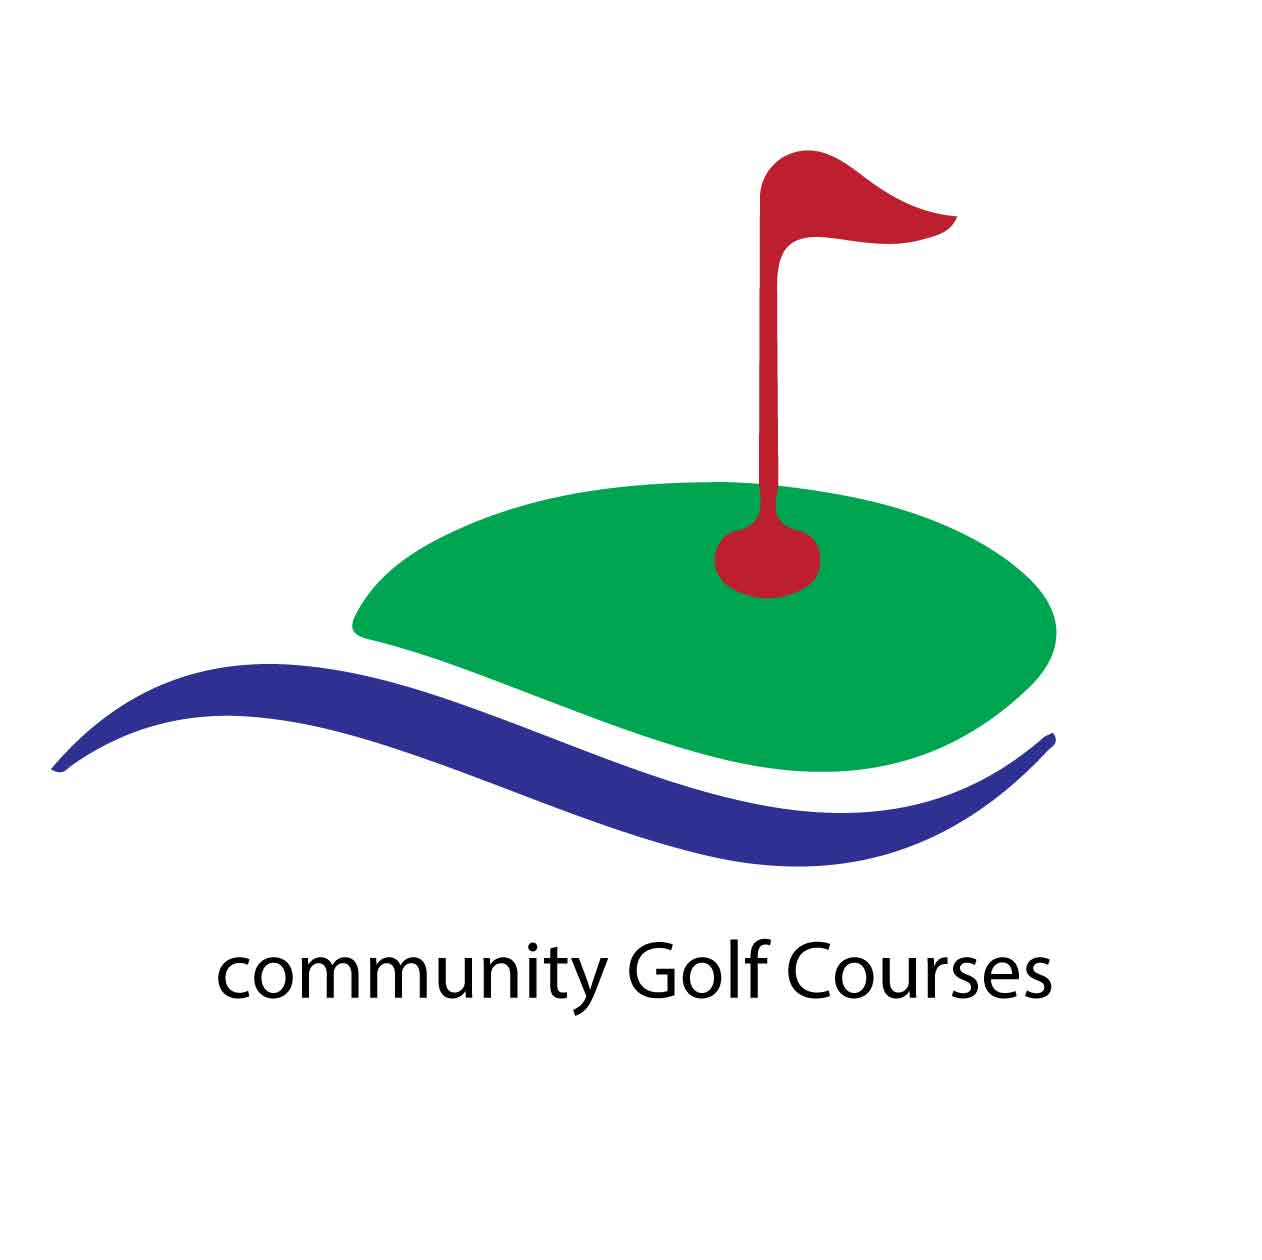 Community Golf Courses